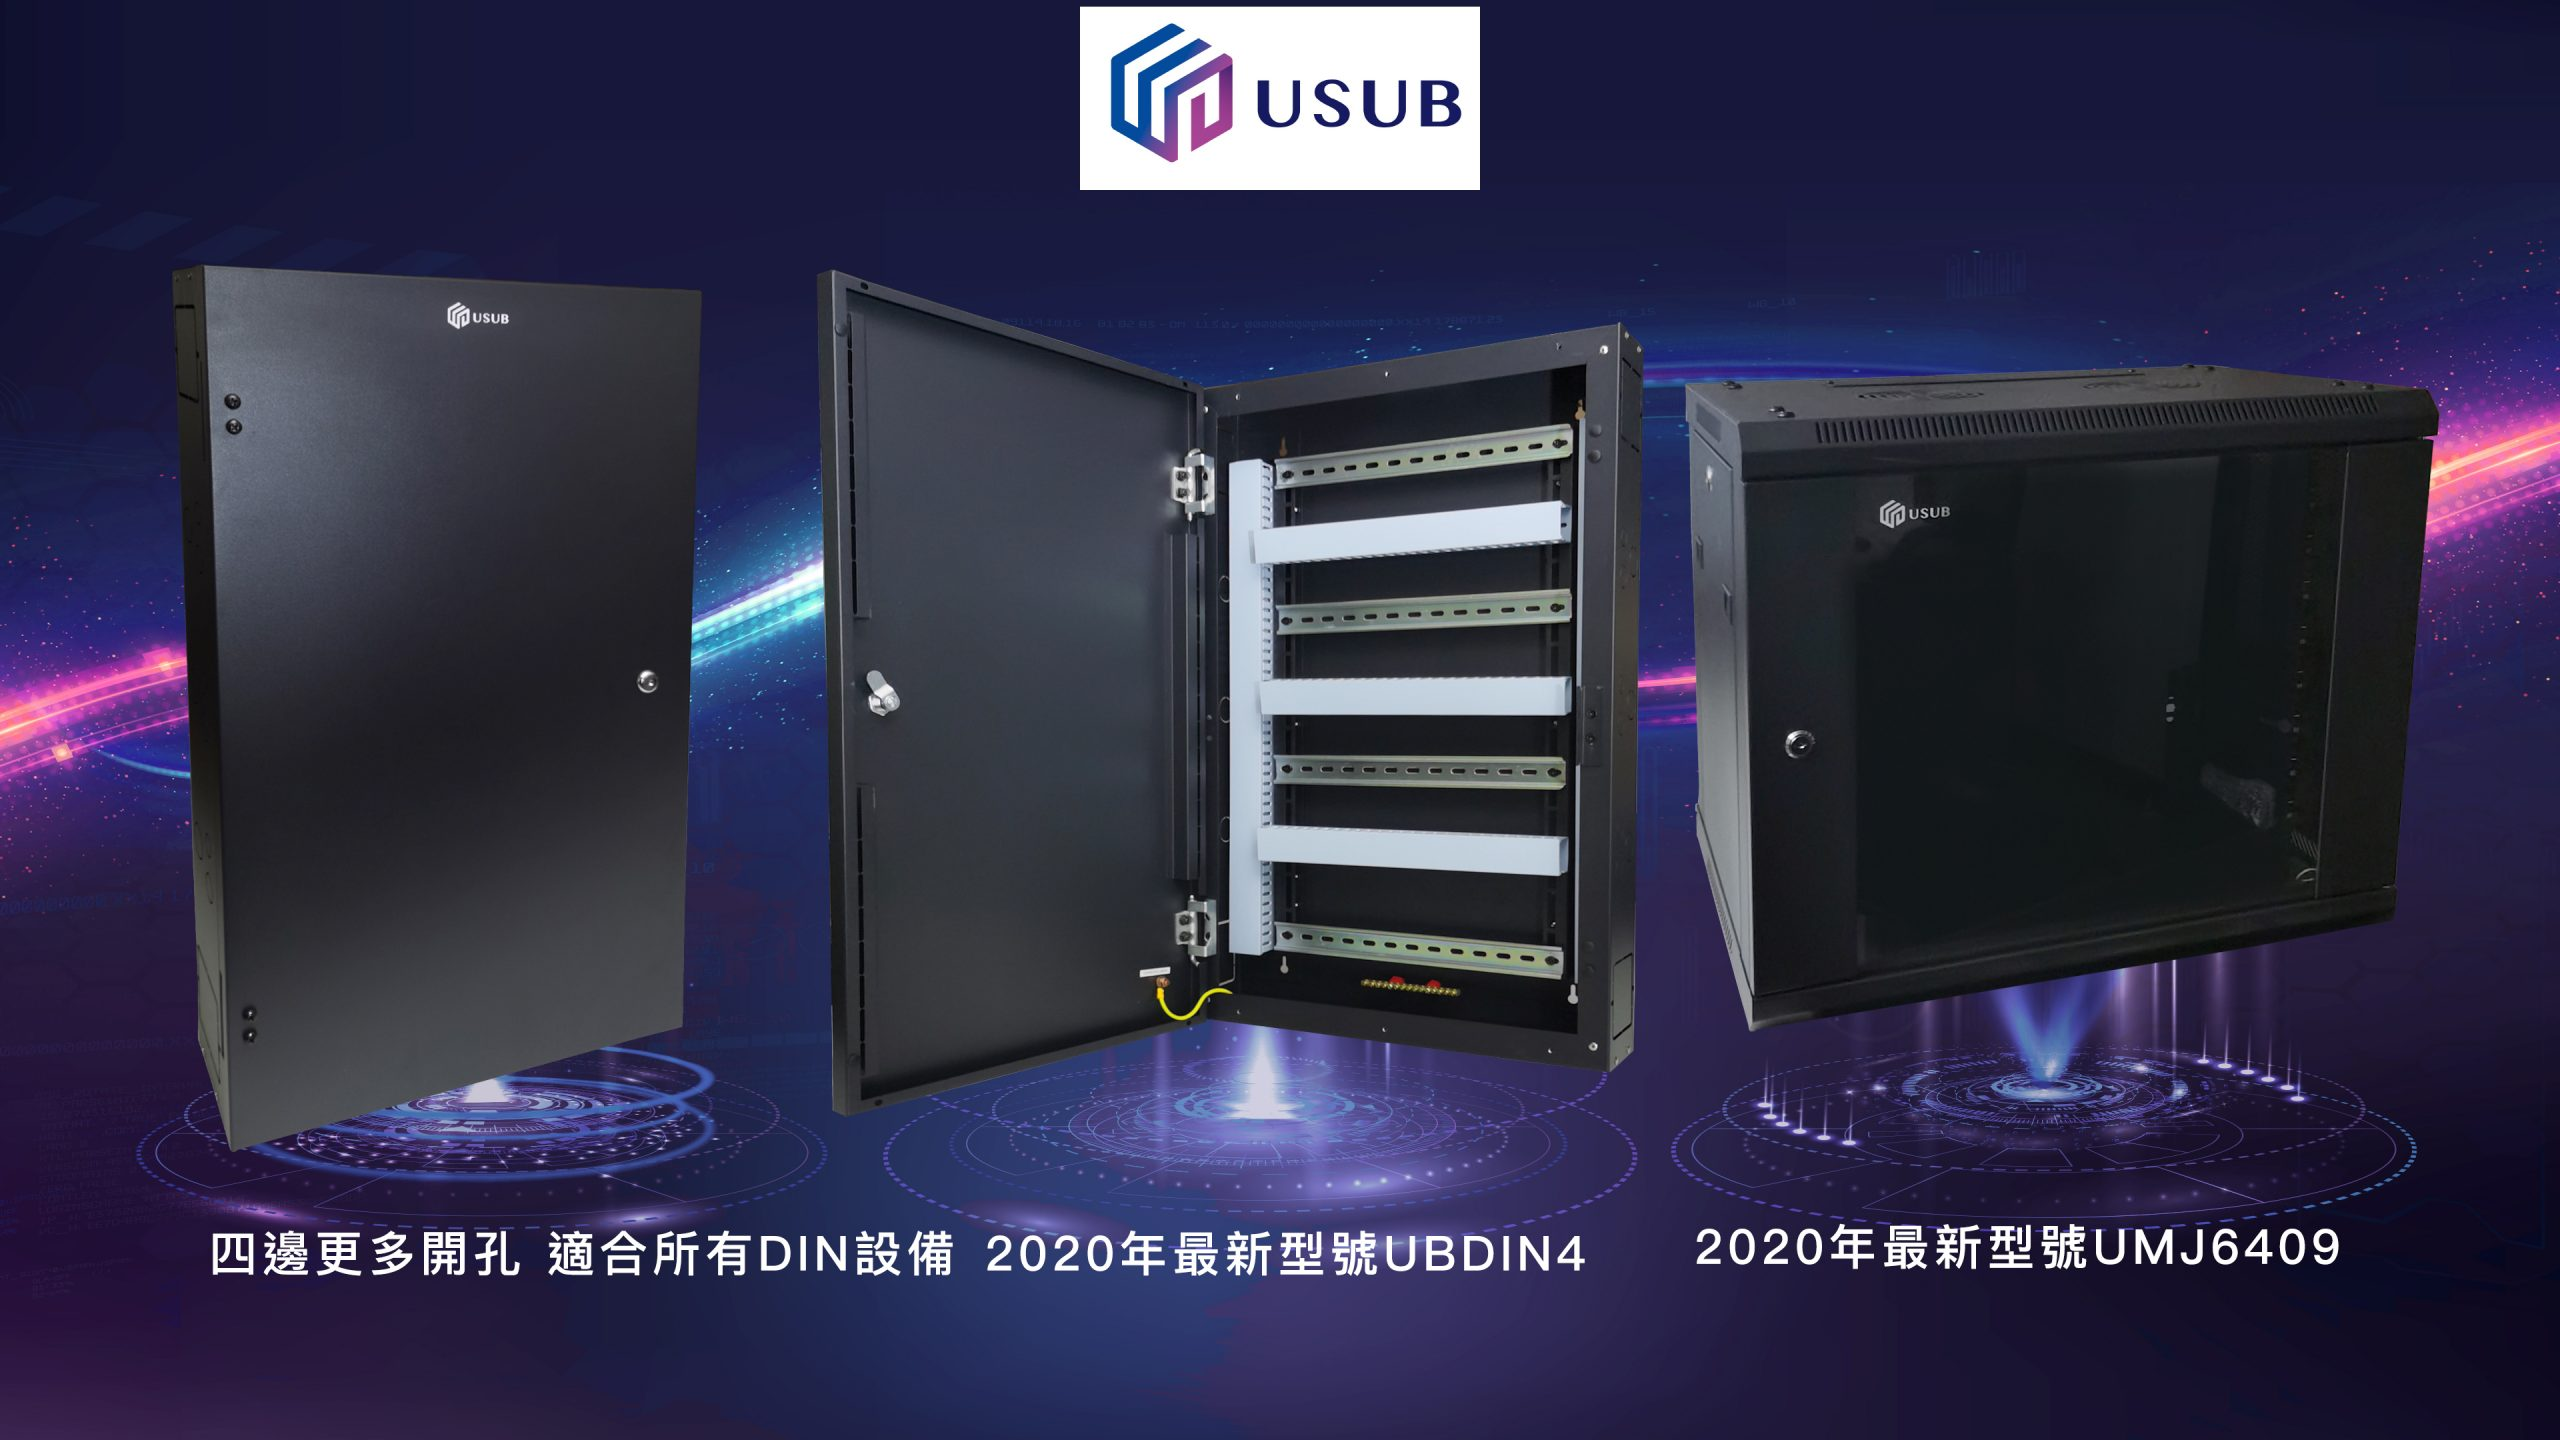 Usub Products